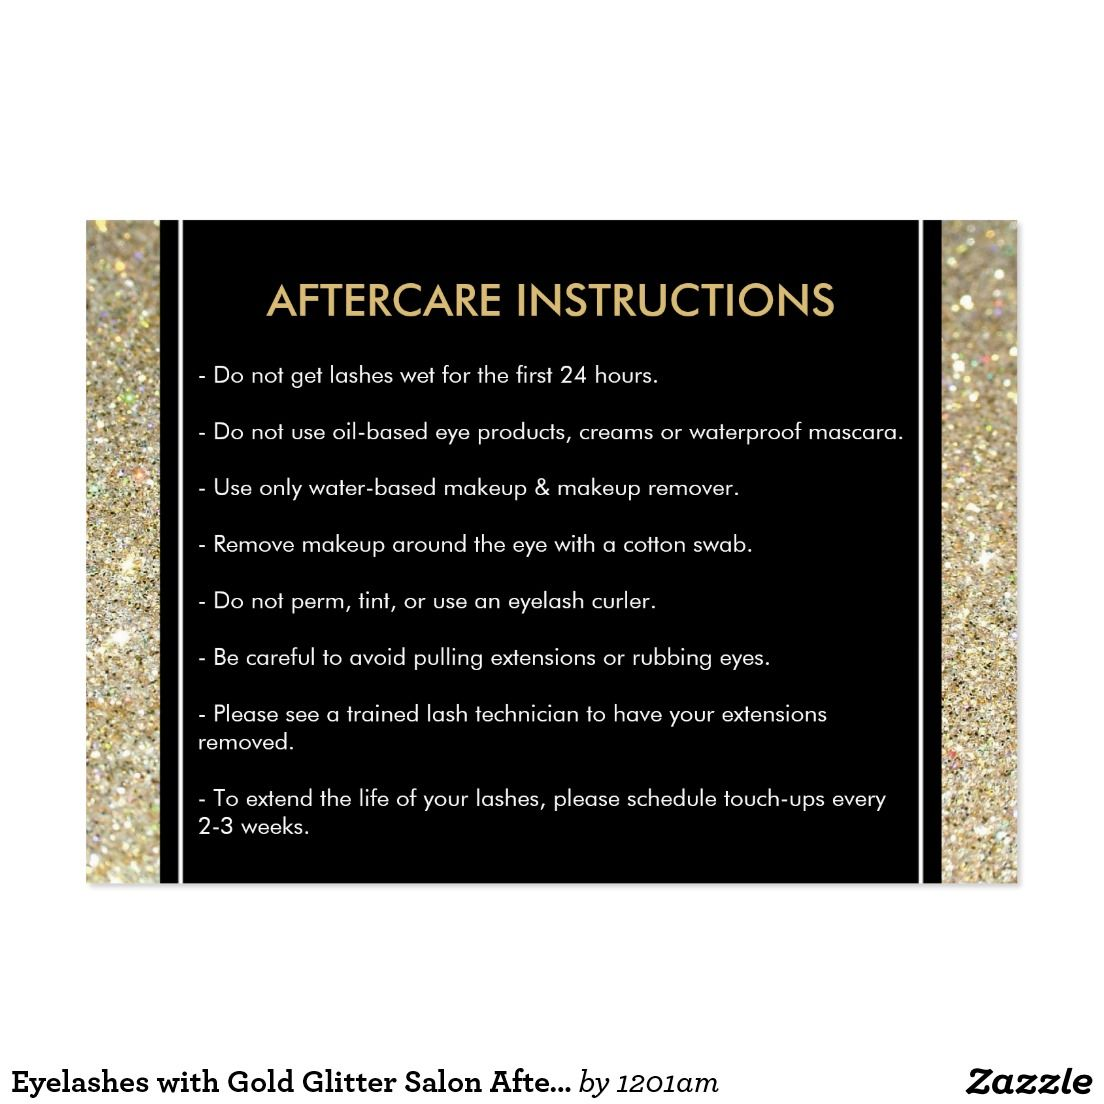 Eyelashes with Gold Glitter Salon Aftercare Card | Glitter ...